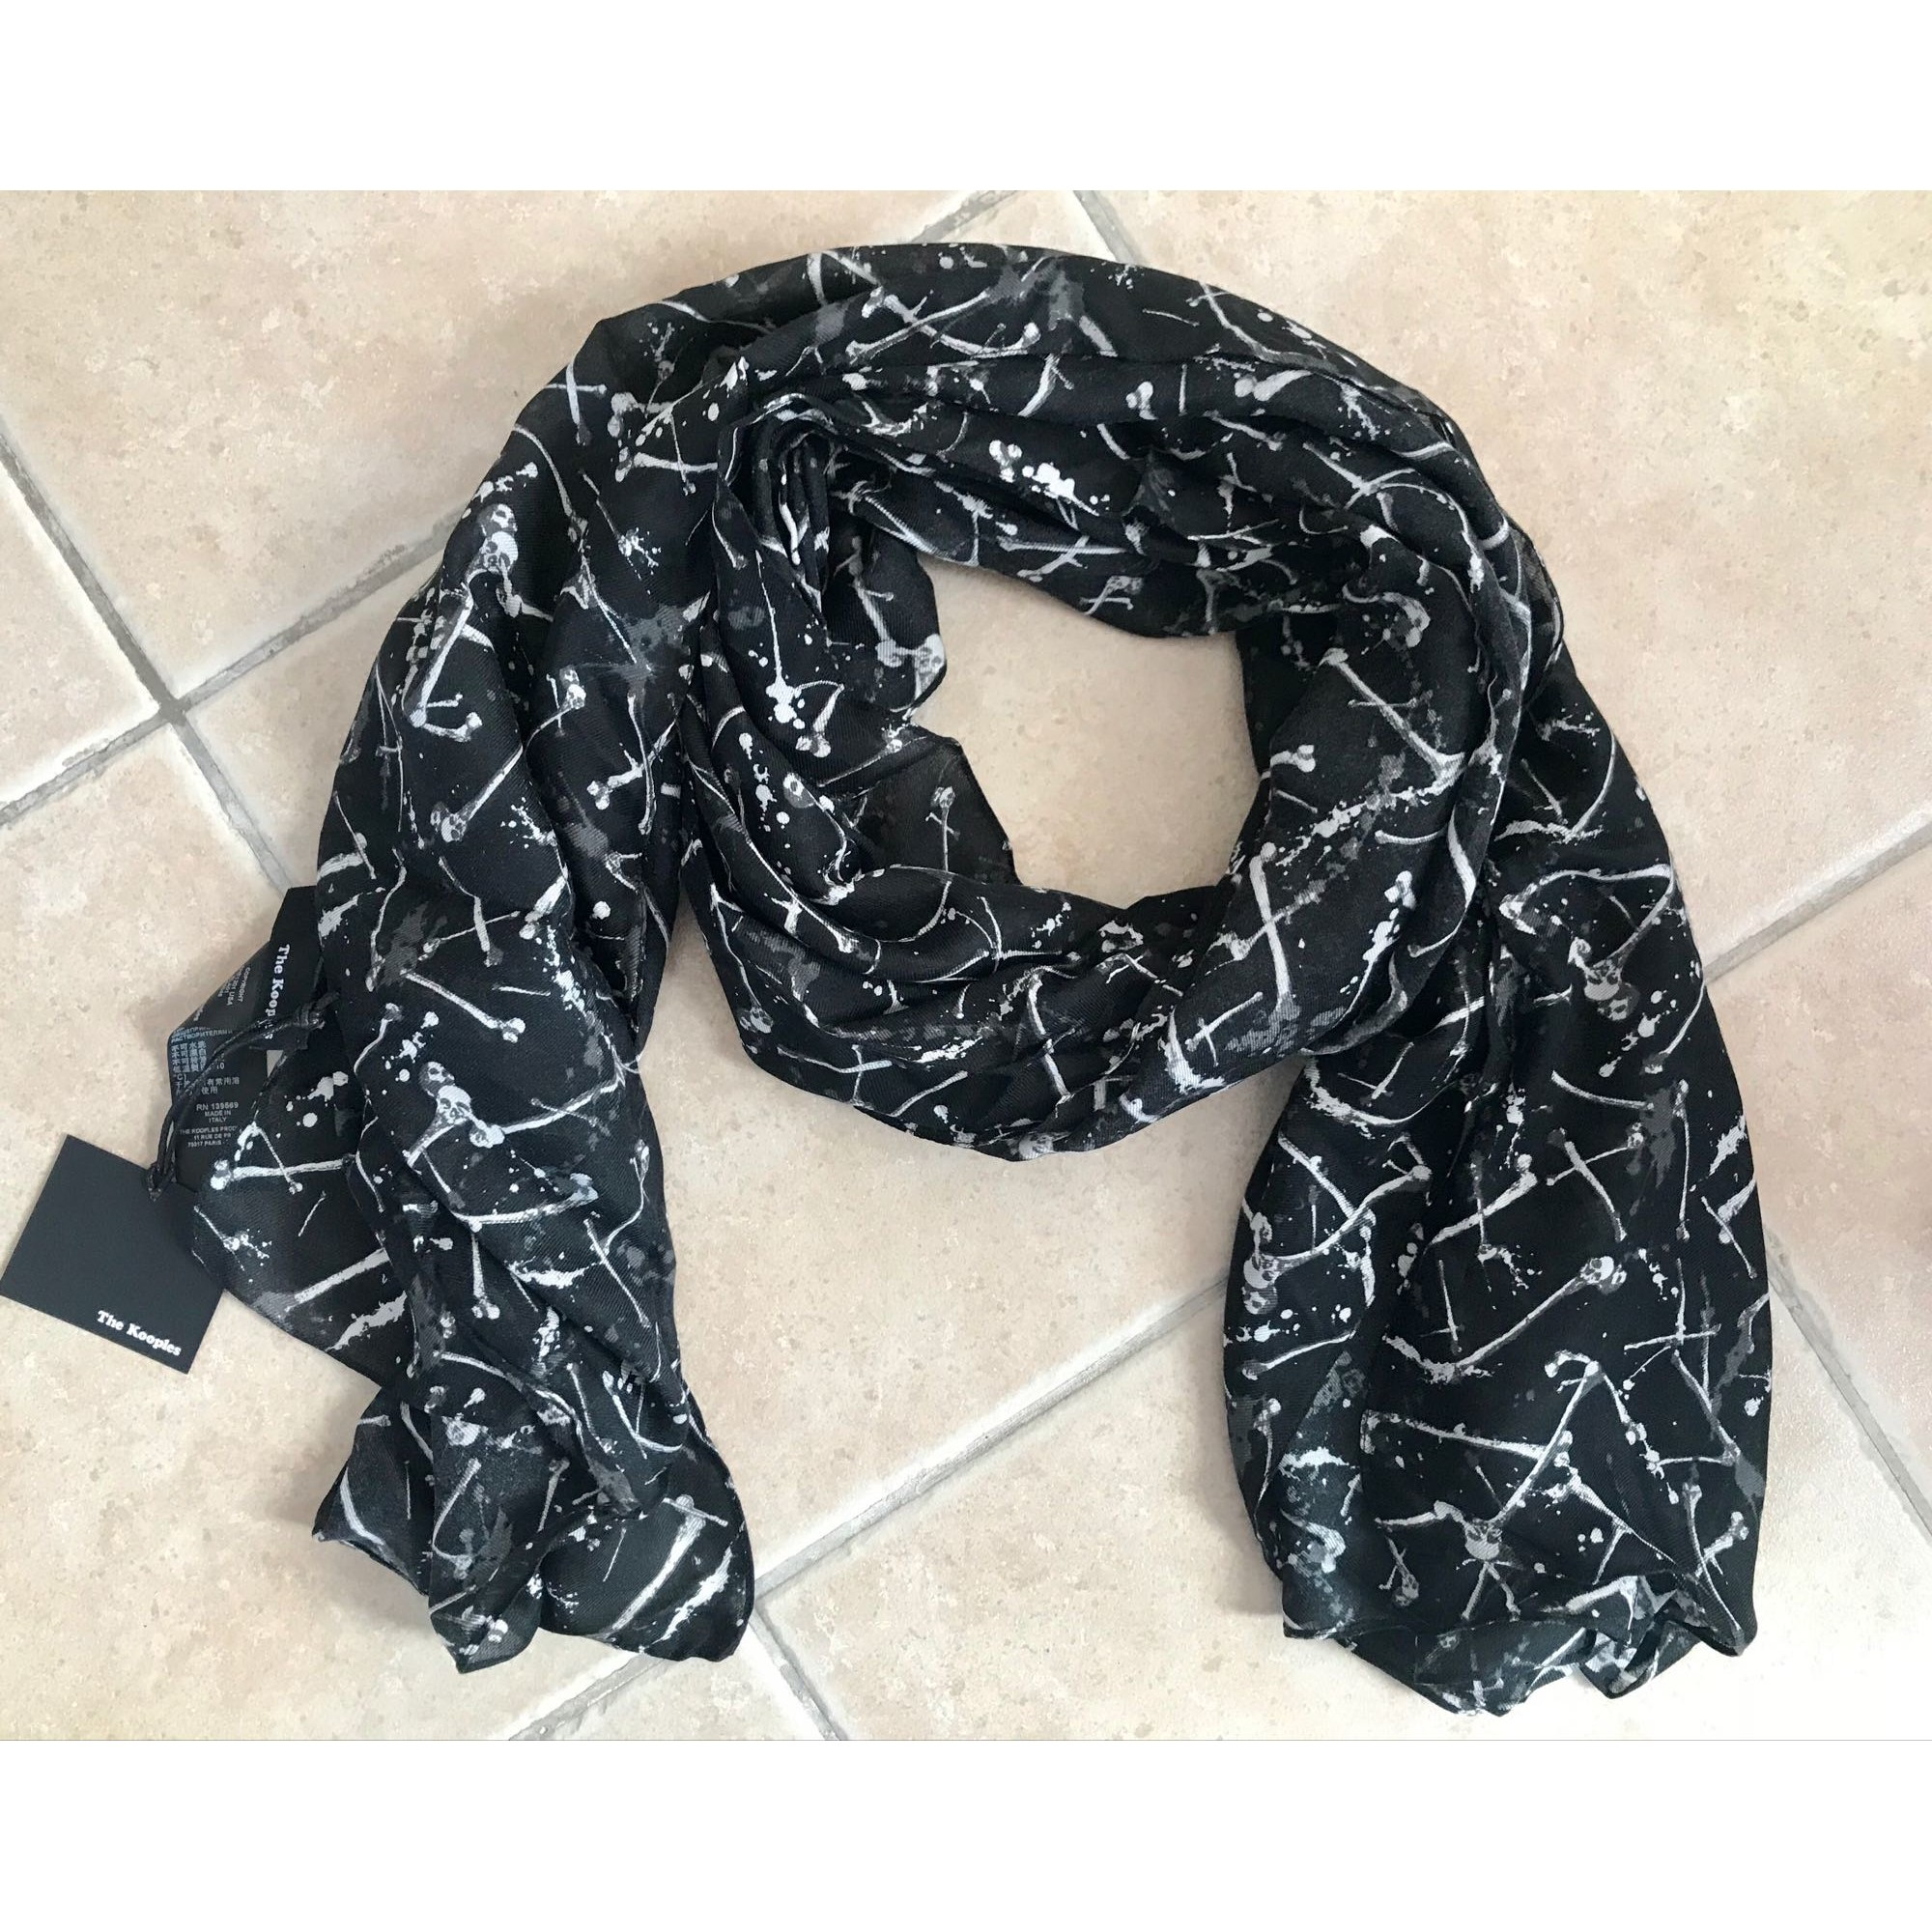 Foulard THE KOOPLES noir - 7428514 a536b7a0d82